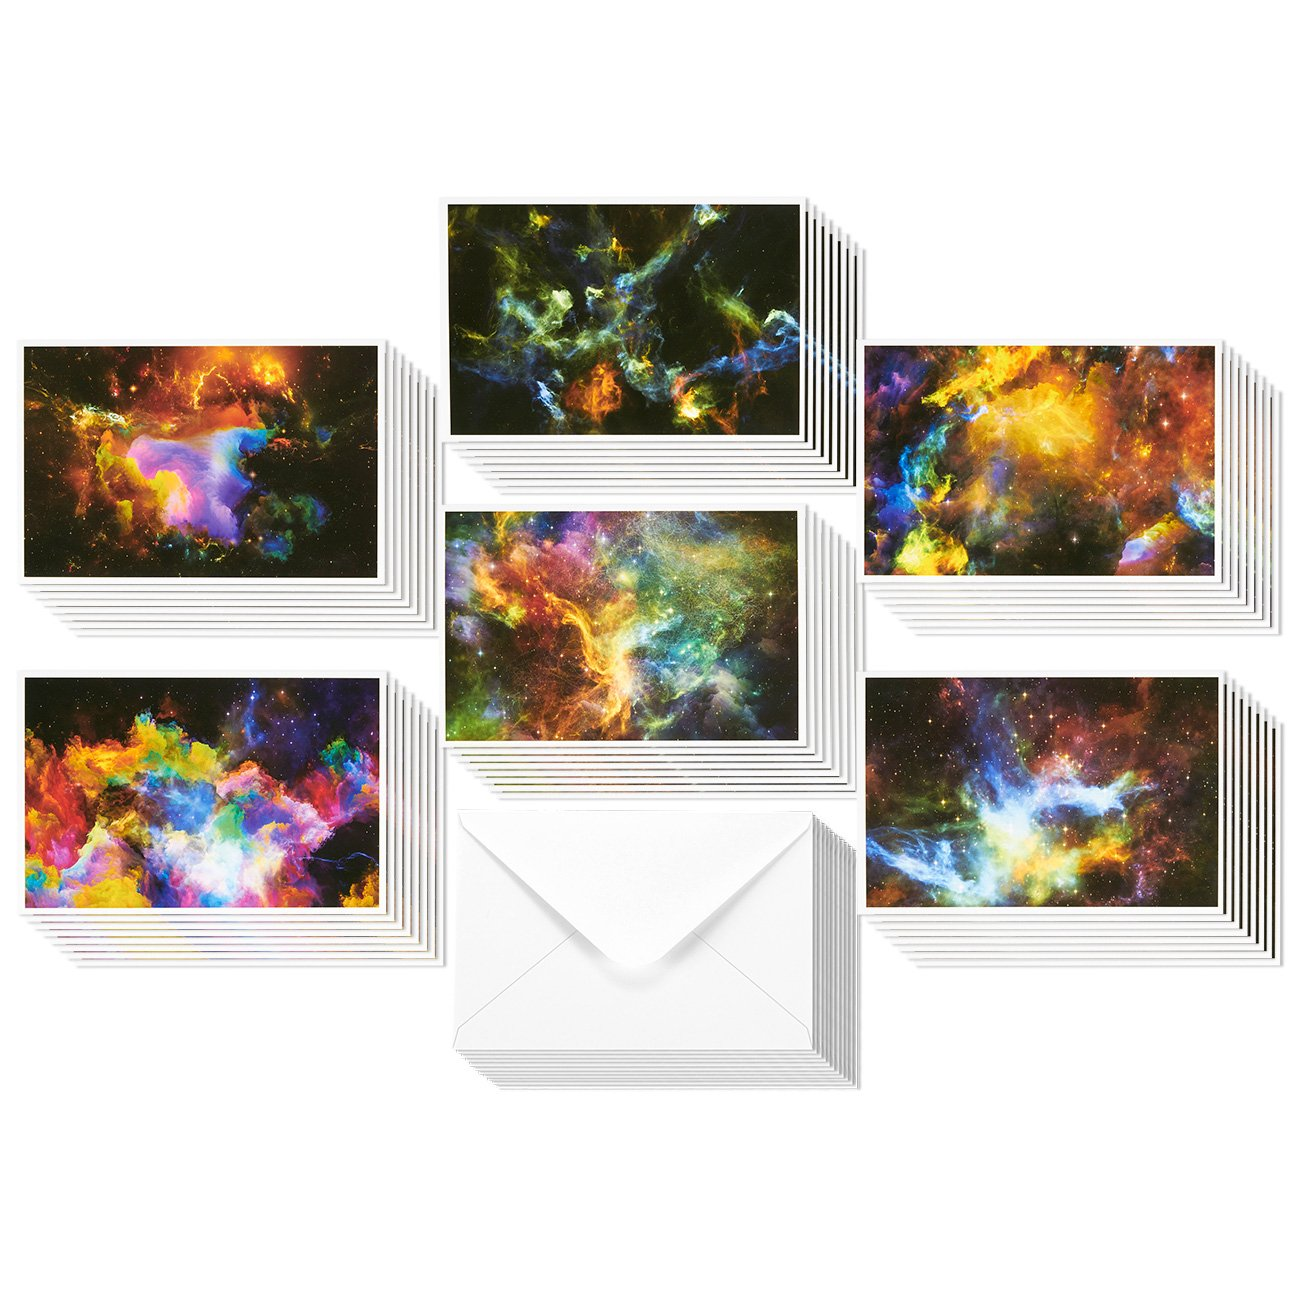 Amazon majestic scenery 36 note cards 6 designs blank 48 pack all occasion greeting cards assorted blank note cards bulk box set cosmic designs kristyandbryce Image collections